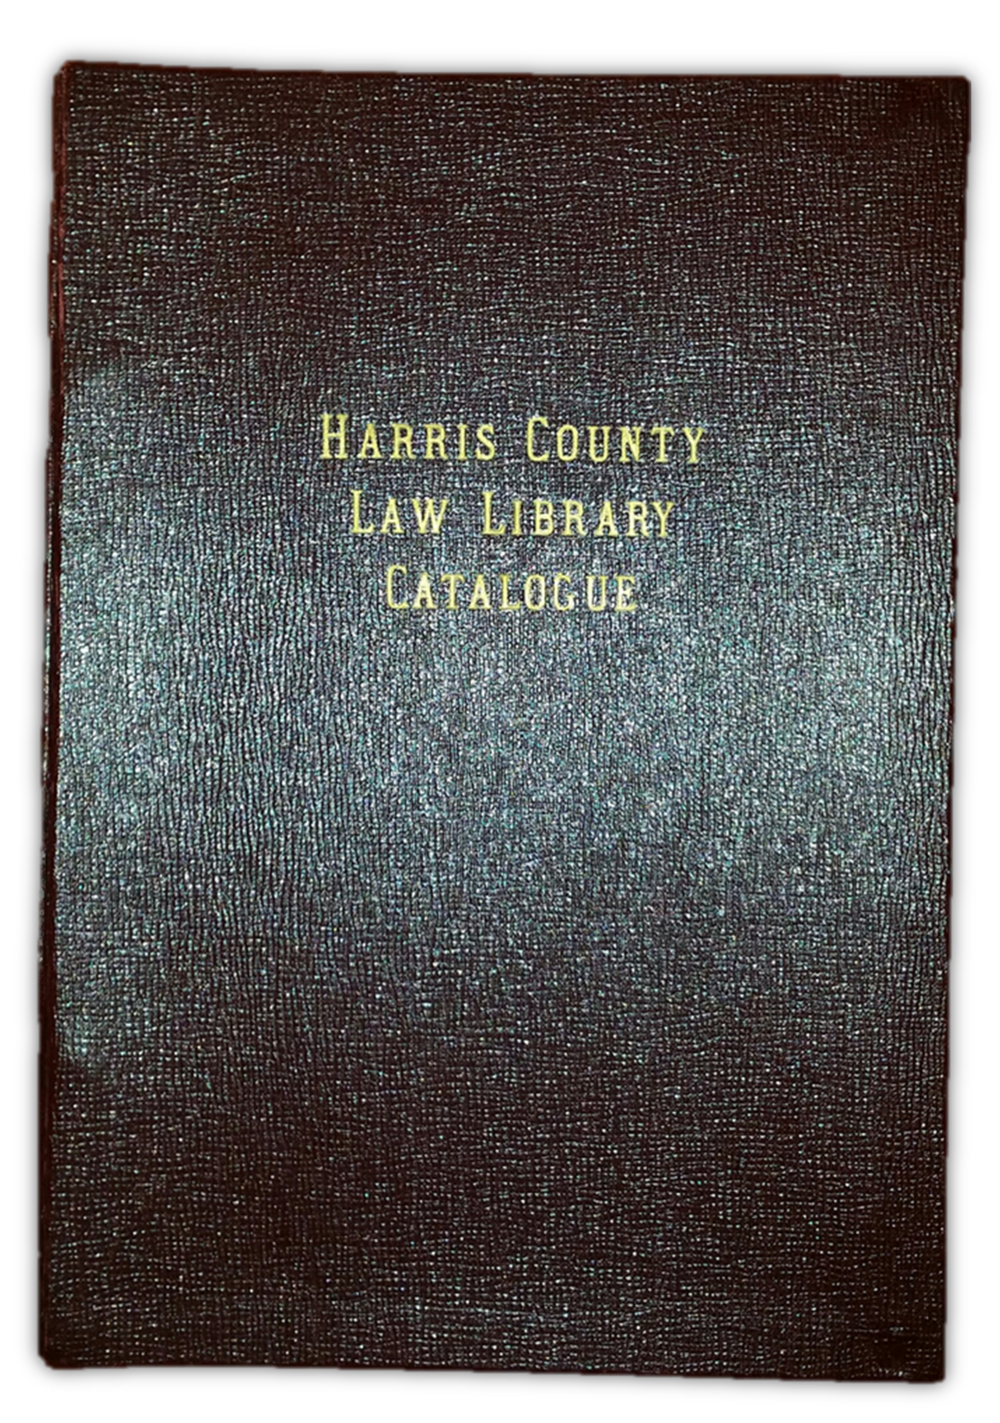 Harris County Law Library Catalogue , published 1949